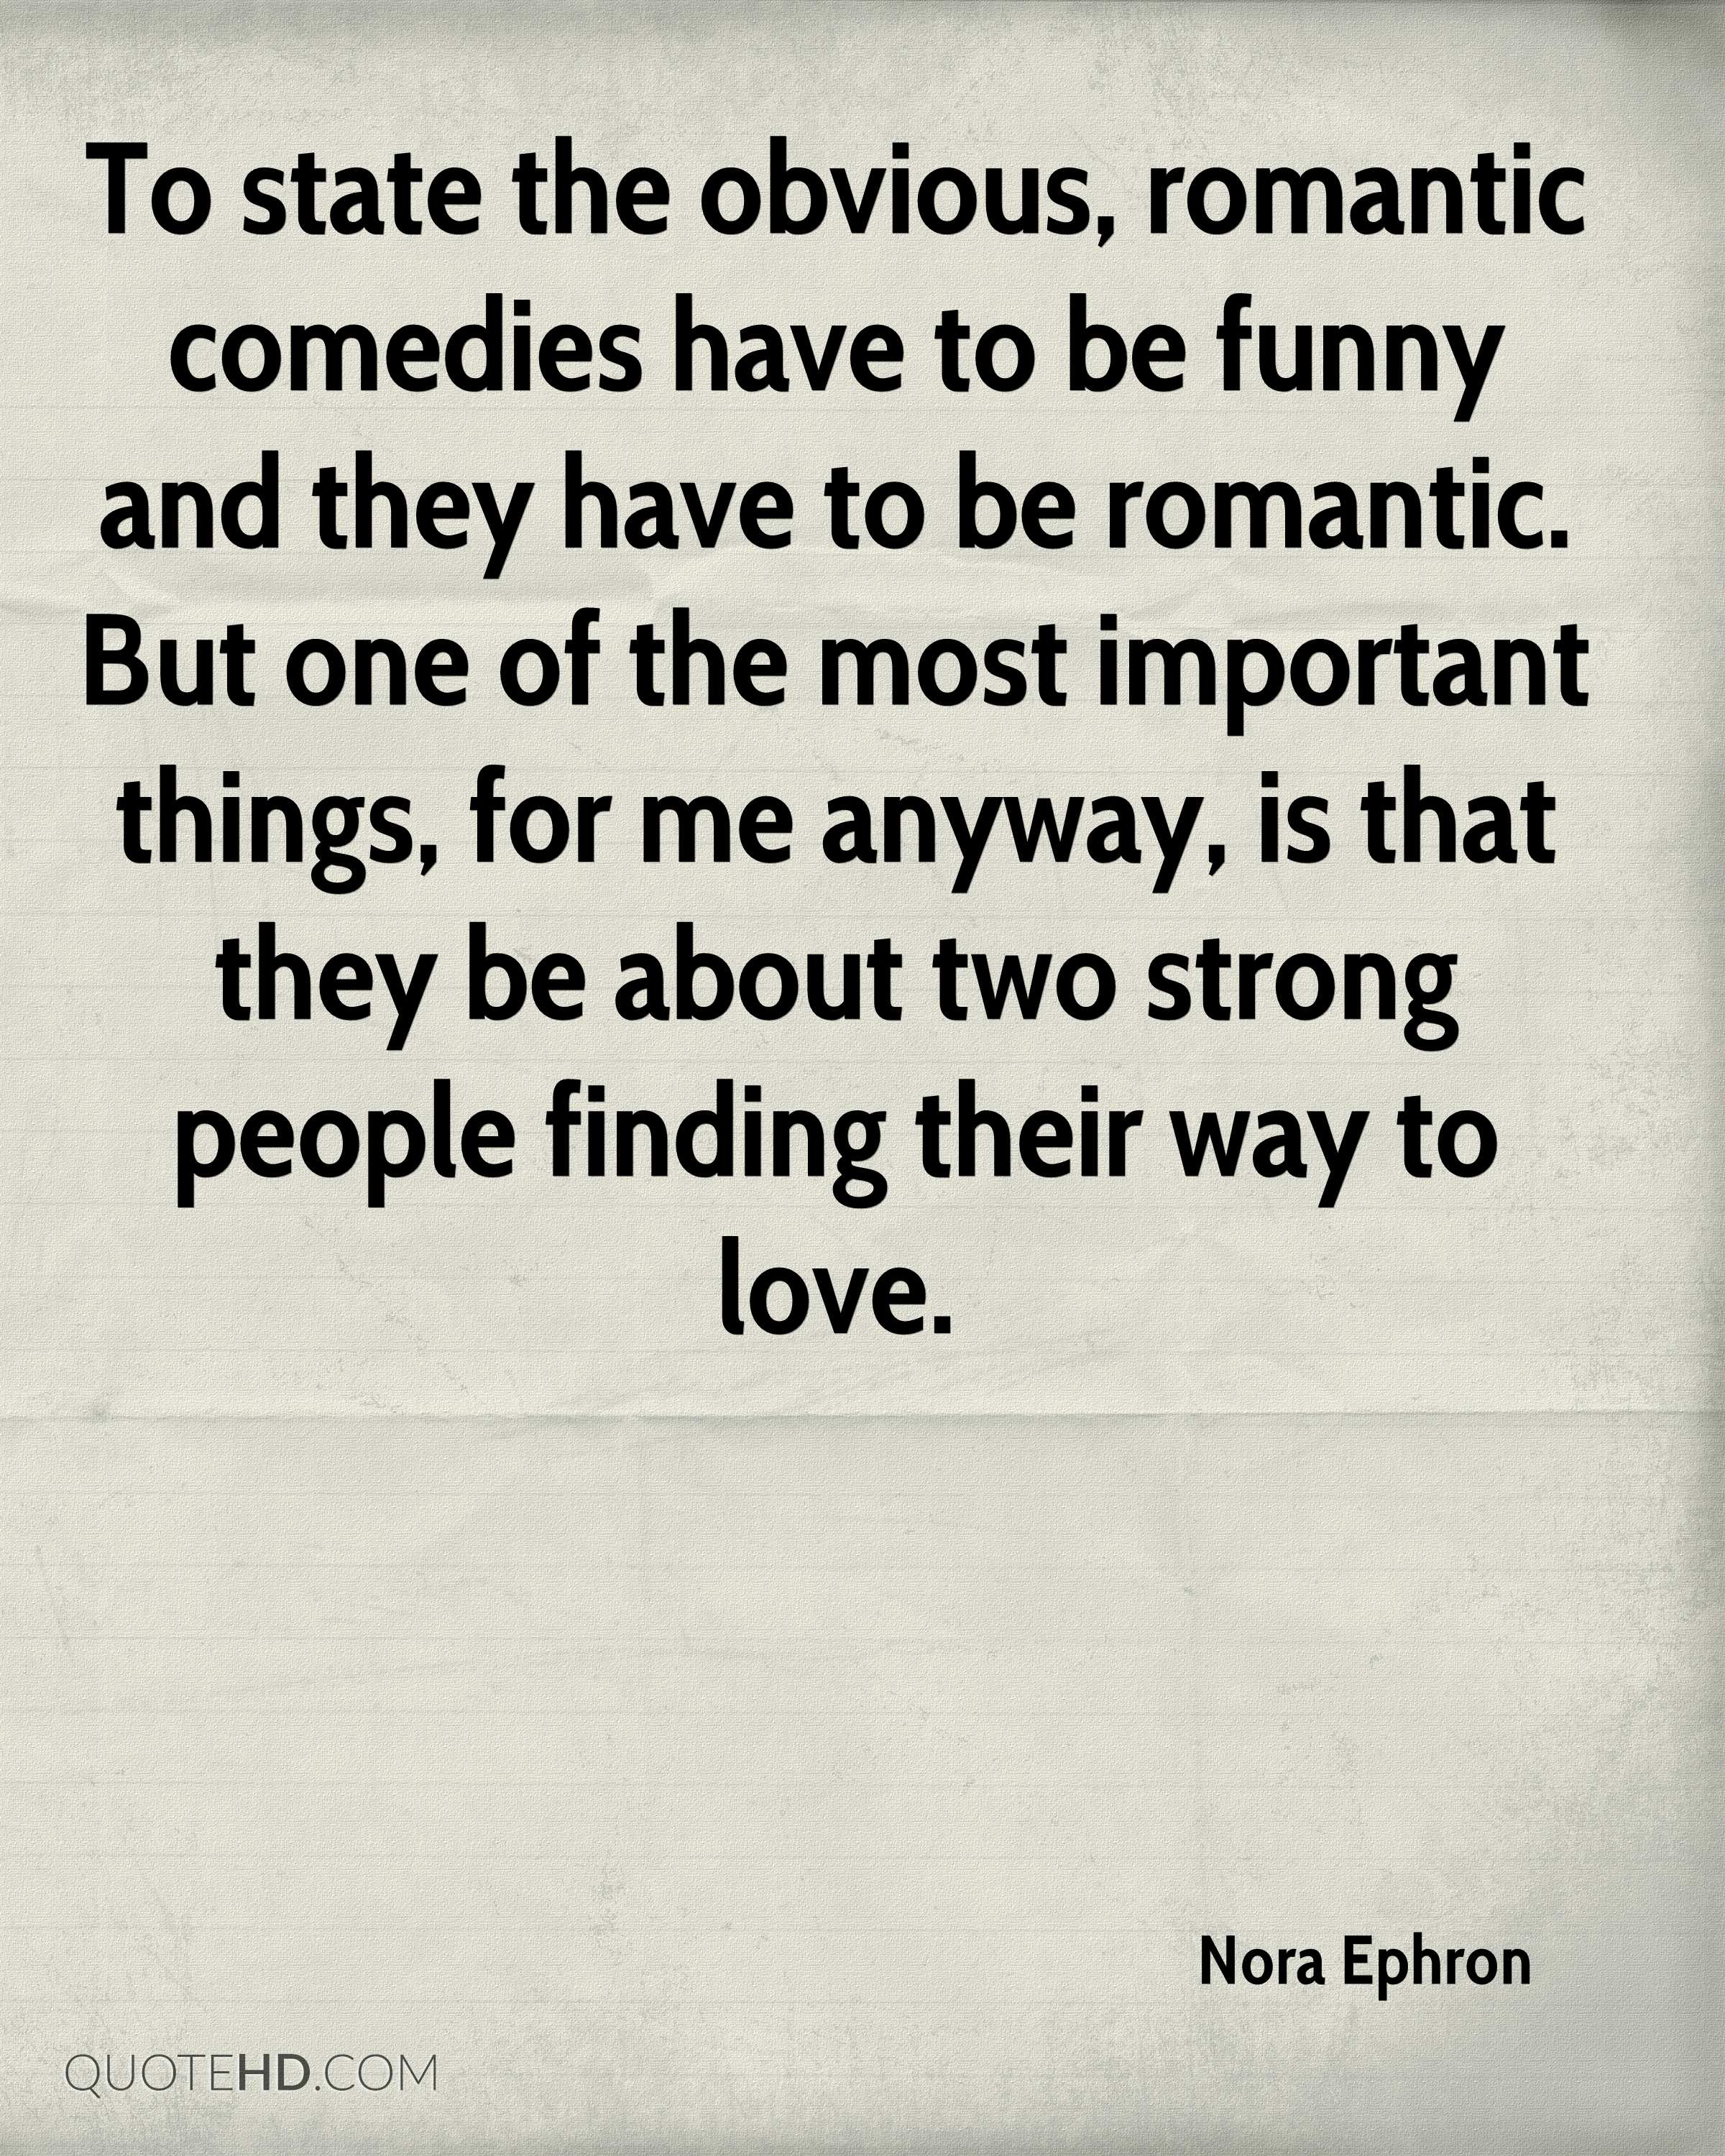 To state the obvious, romantic comedies have to be funny and they have to be romantic. But one of the most important things, for me anyway, is that they be about two strong people finding their way to love.